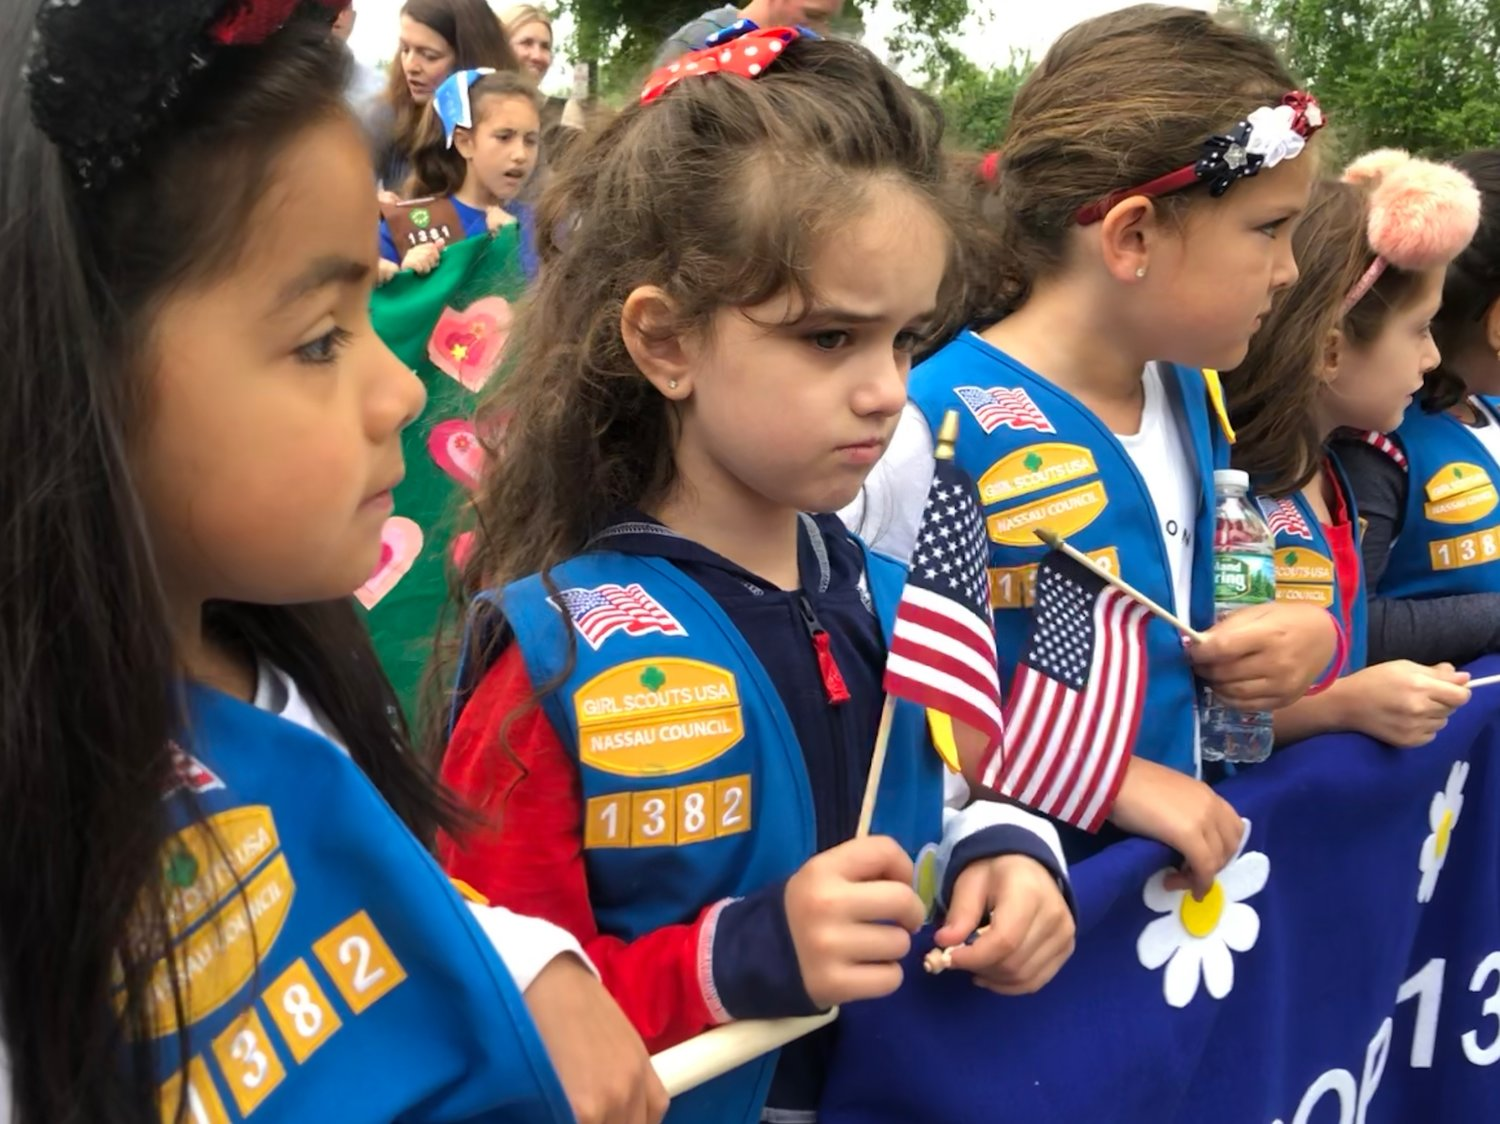 Troop 1382 scouts, Valerie Rico Sabrina D'Angelo, Alexandra Maresca and Markella Araujo marched in the 2018 Franklin Square Memorial Day Parade.